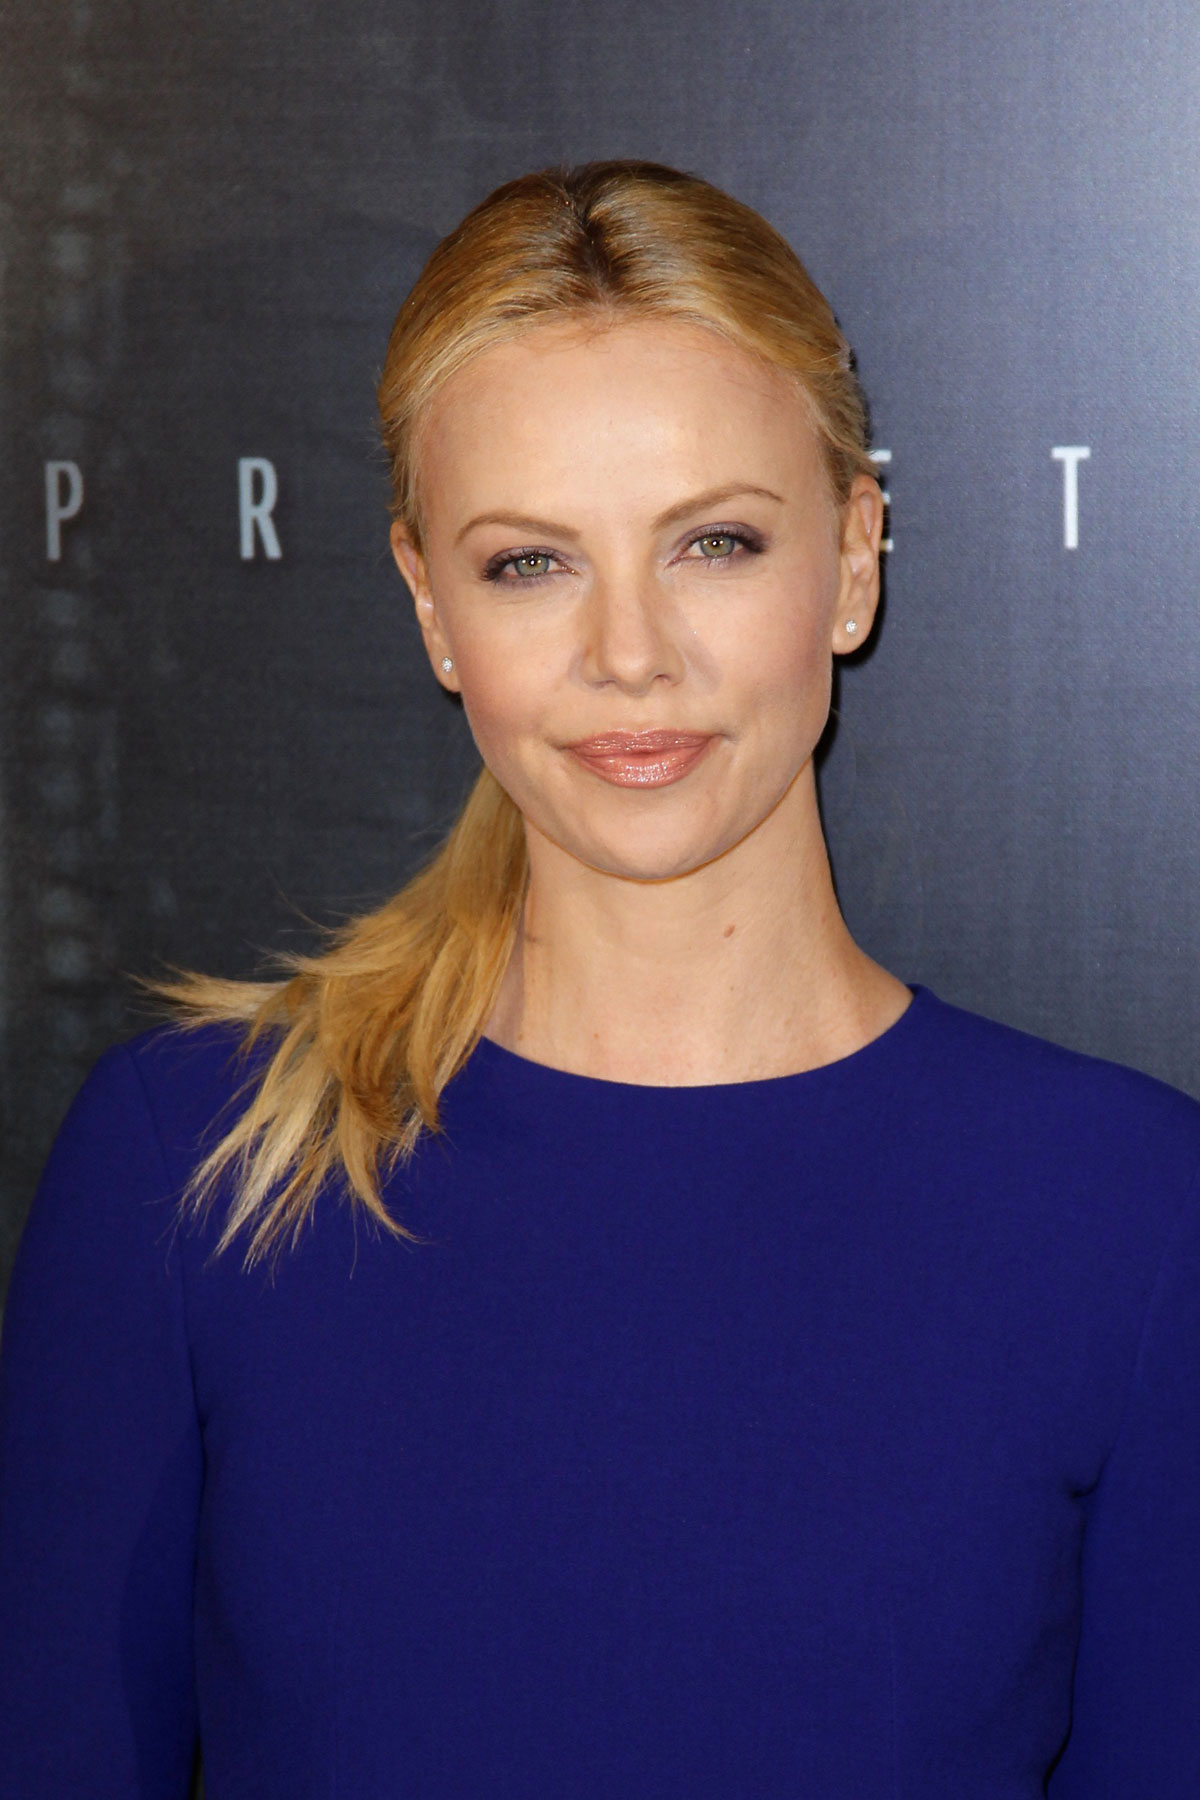 CHARLIZE THERON At Prometheus Premiere In Paris HawtCelebs